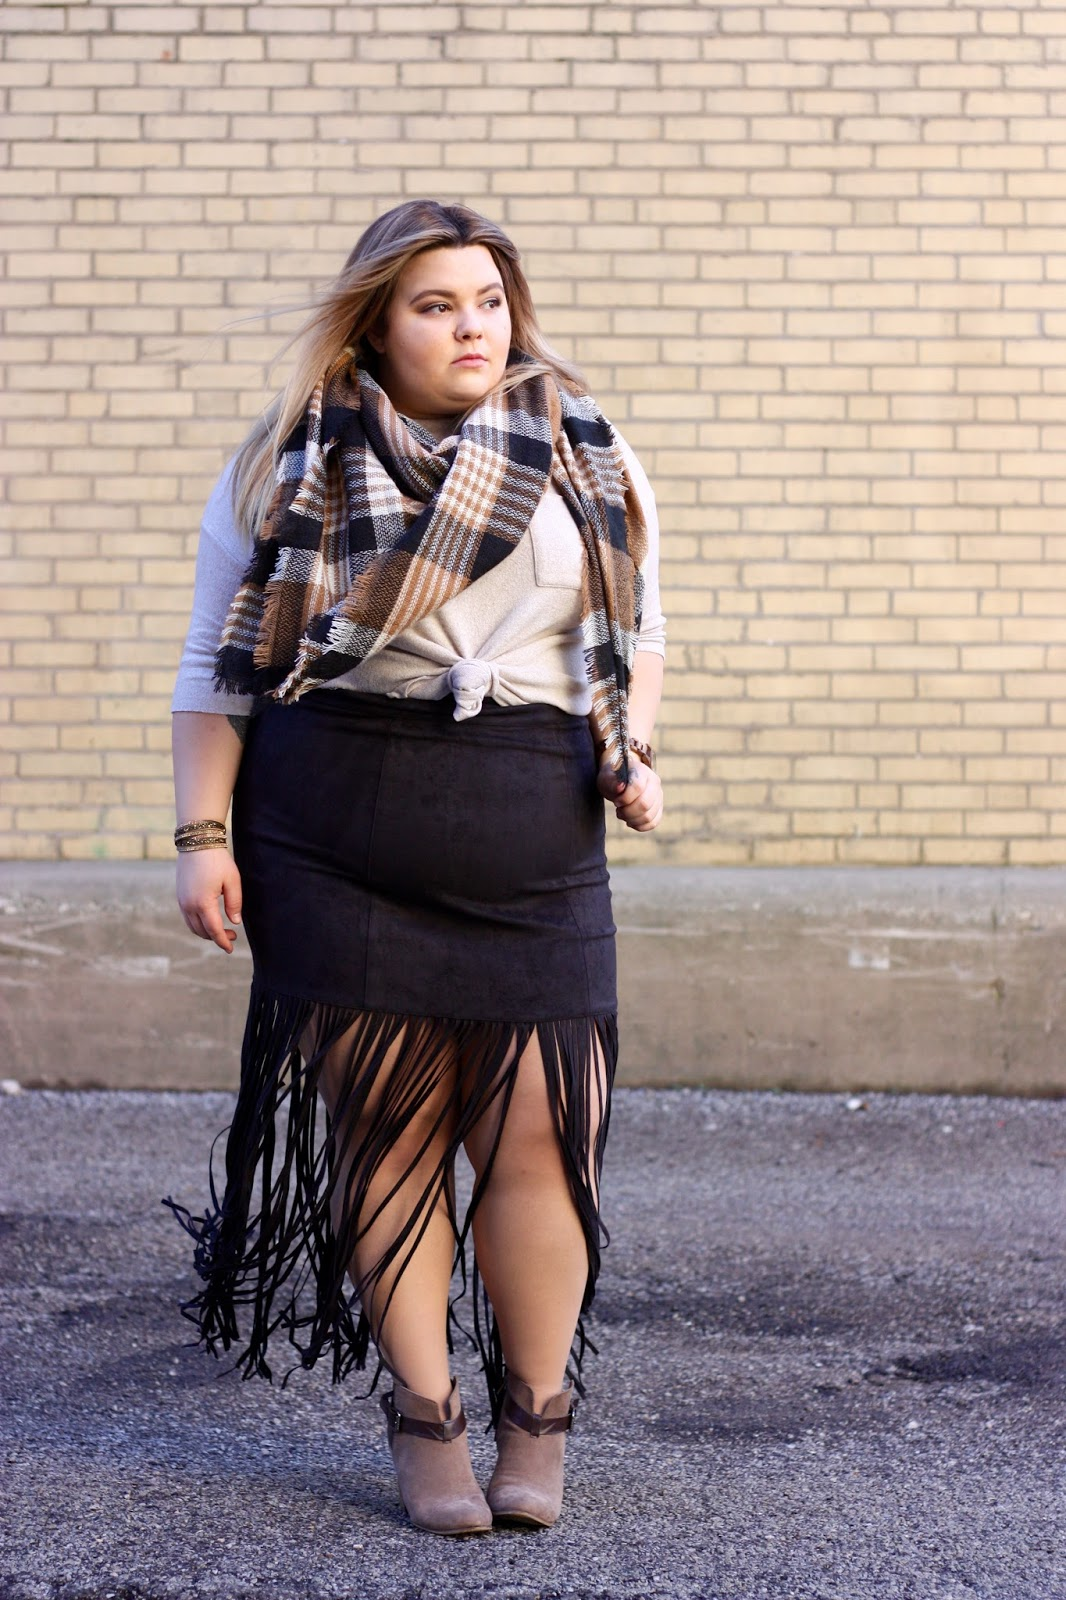 Jord Watches, womens wood watches, natalie craig, natalie in the city, fashion to figure, fringe, plus size fringe skirt, plus size fashion blogger, chicago blogger, midwest blogger, full figured, ft., blanket scarf,